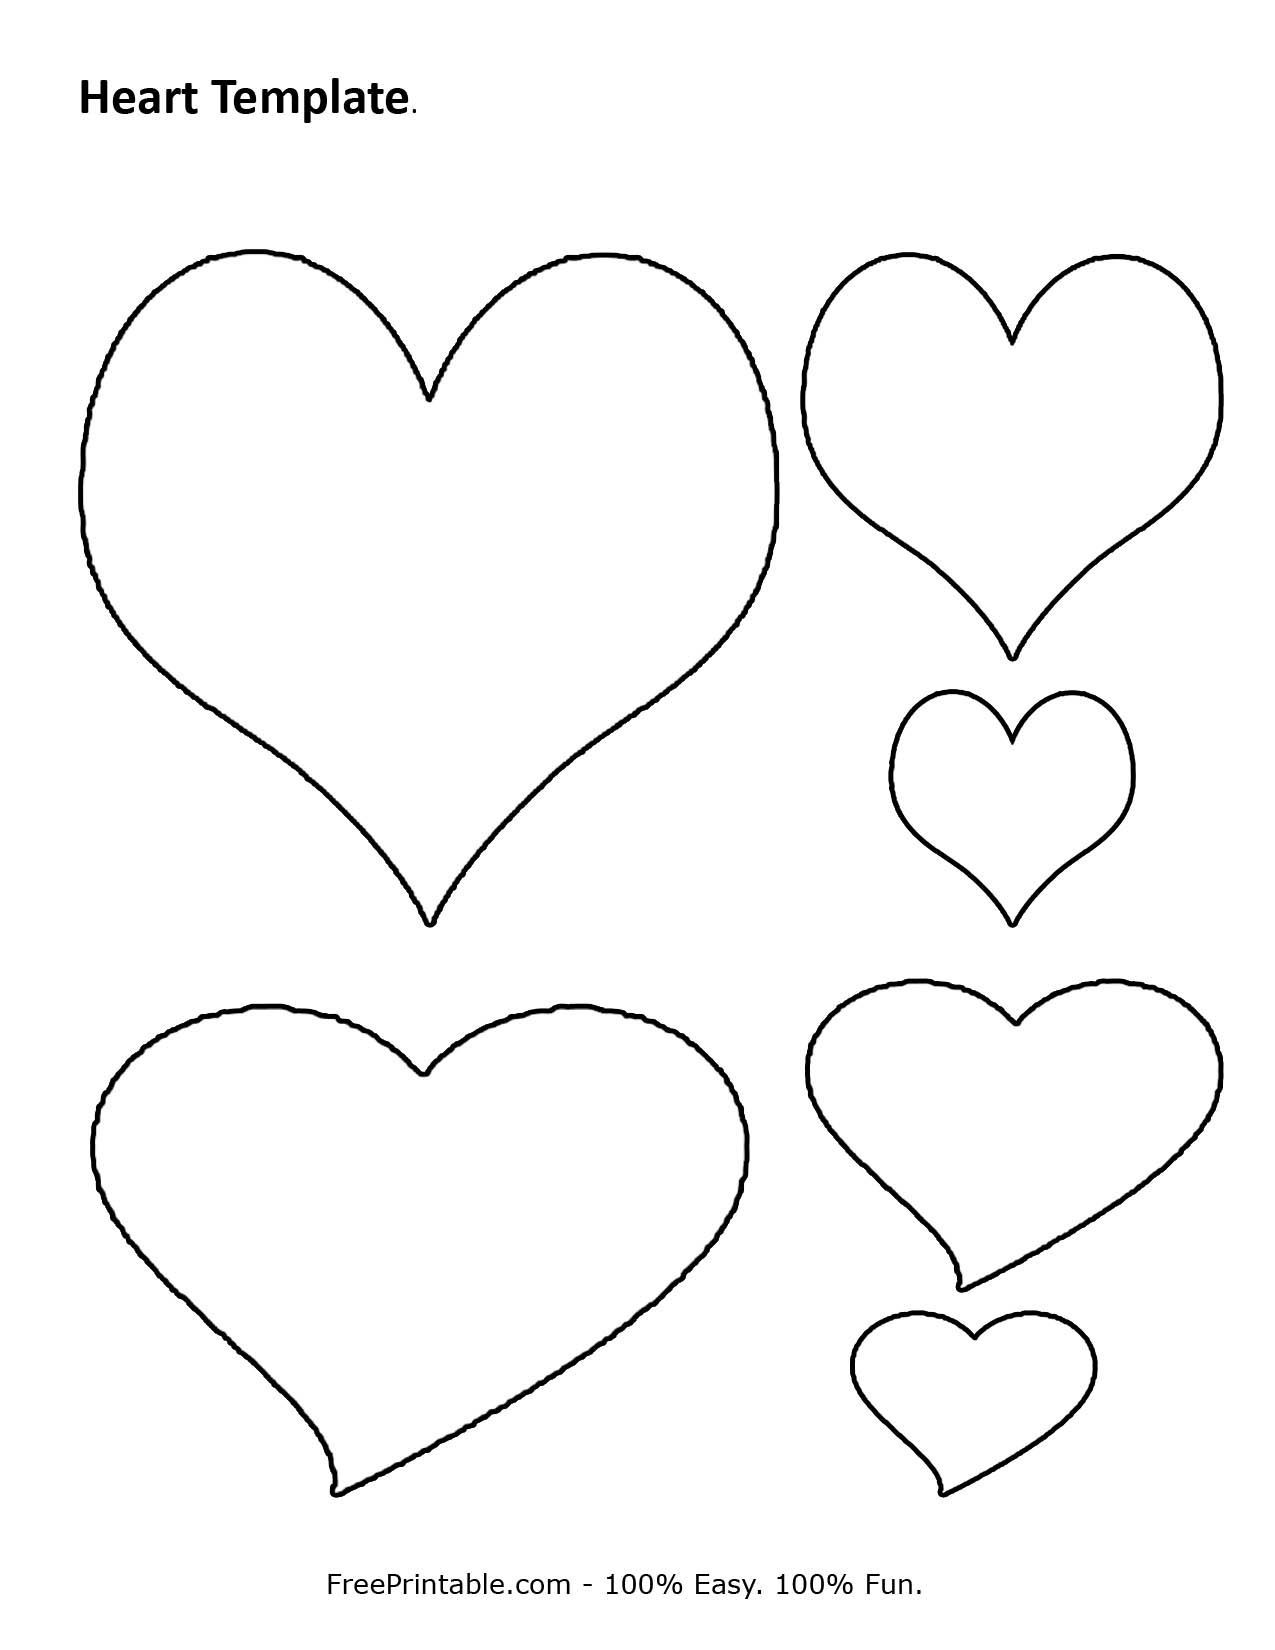 Free Printable Heart Template | Cupid Has A Heart On | Pinterest - Free Printable Heart Templates